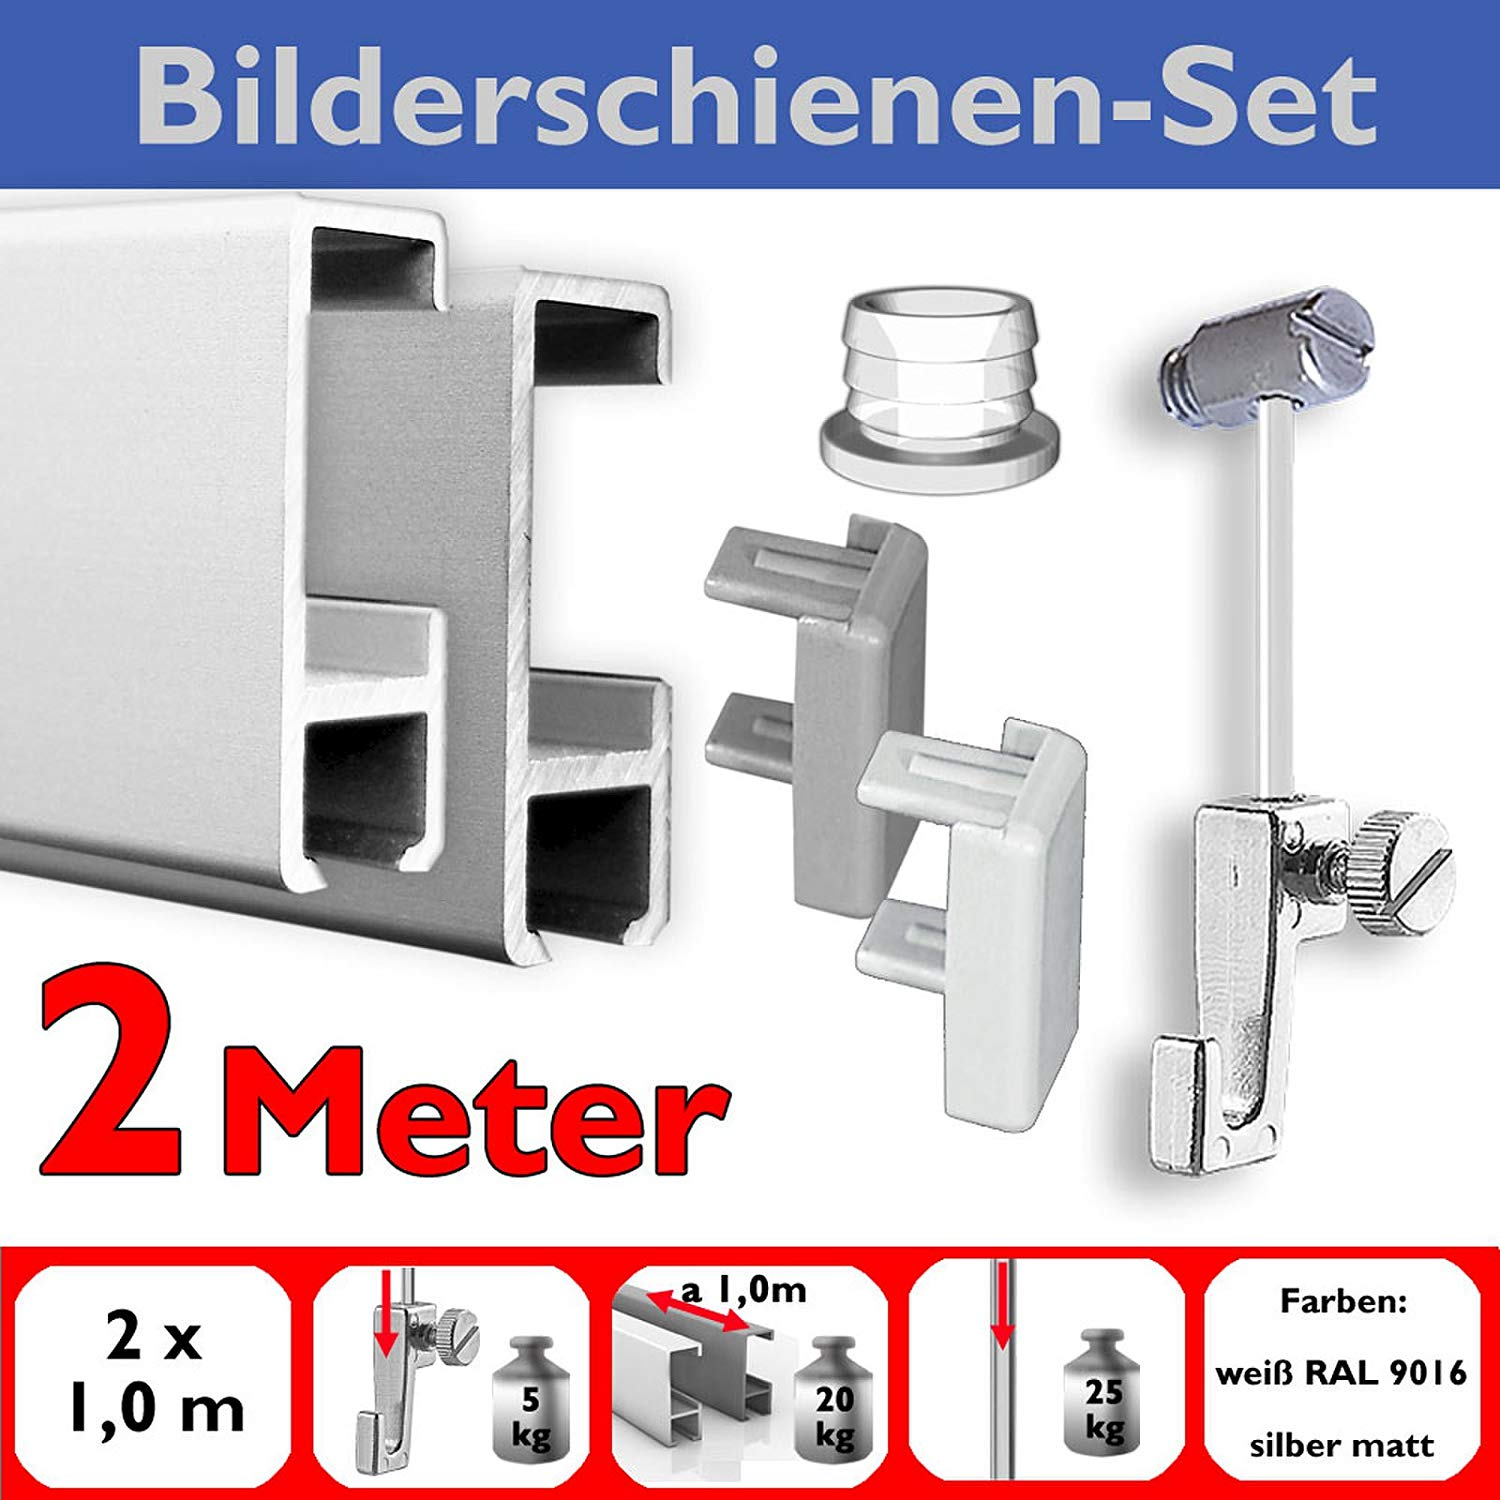 2m picture hanging kit 6,56 ft, 2,18 yard picture rails gallery rails with accessories in white or silver